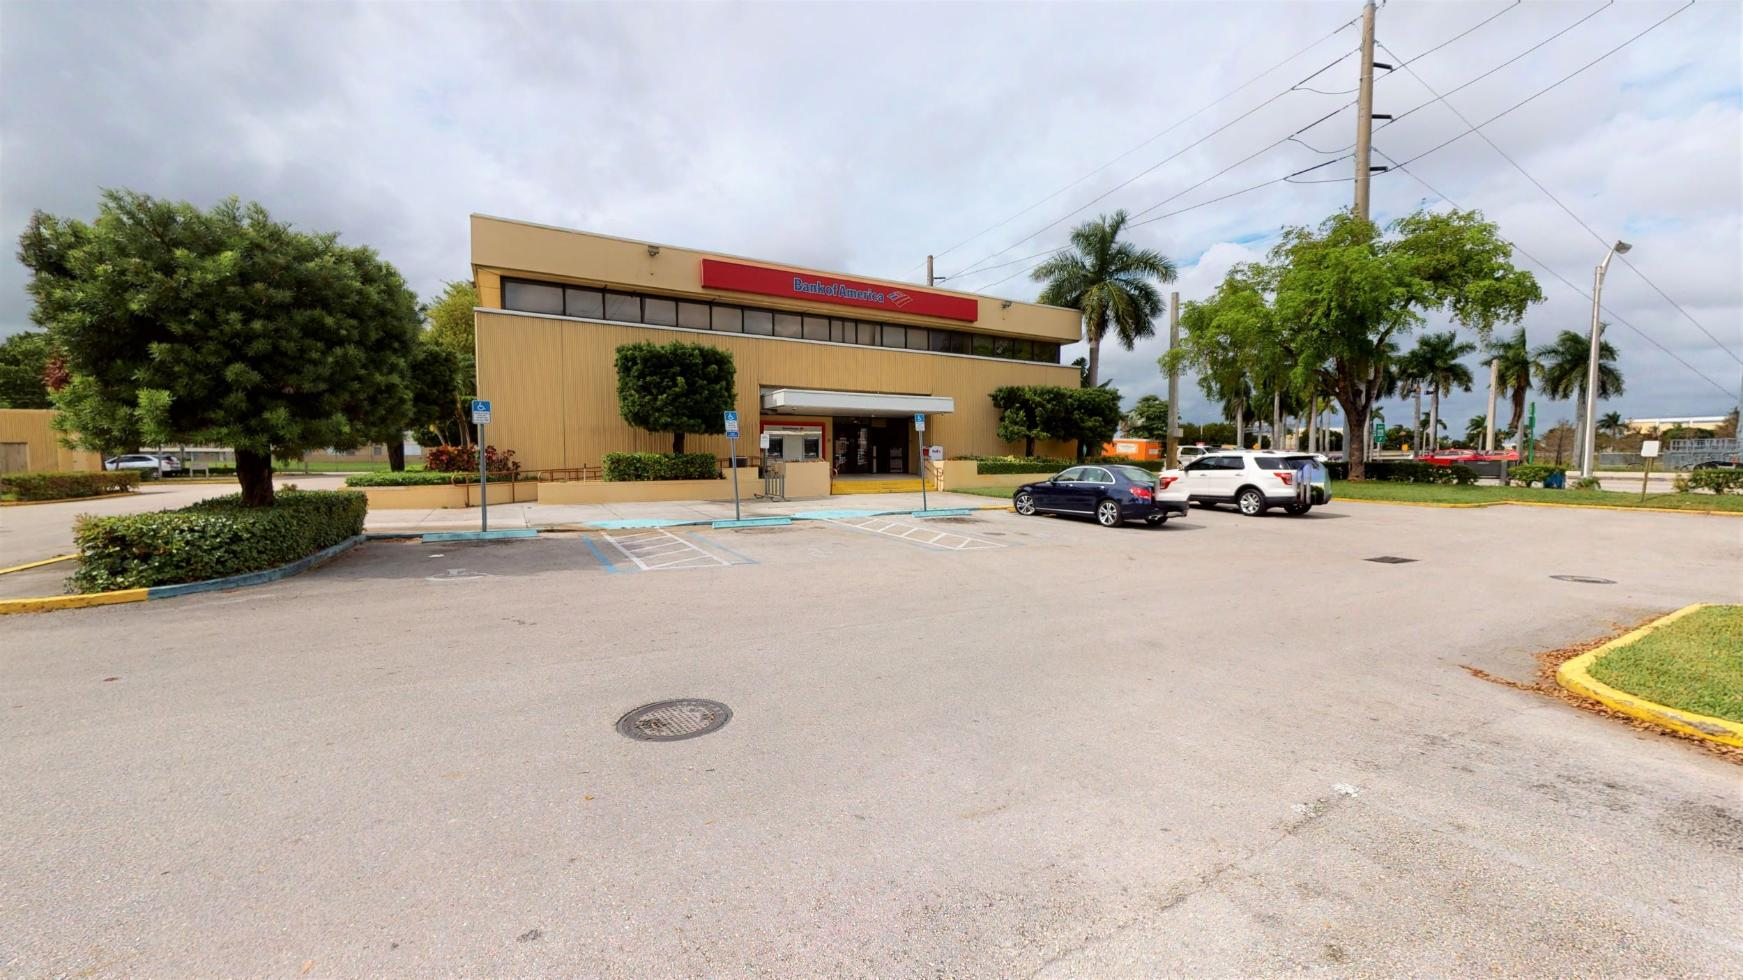 Bank of America financial center with drive-thru ATM   7760 W Flagler St, Miami, FL 33144